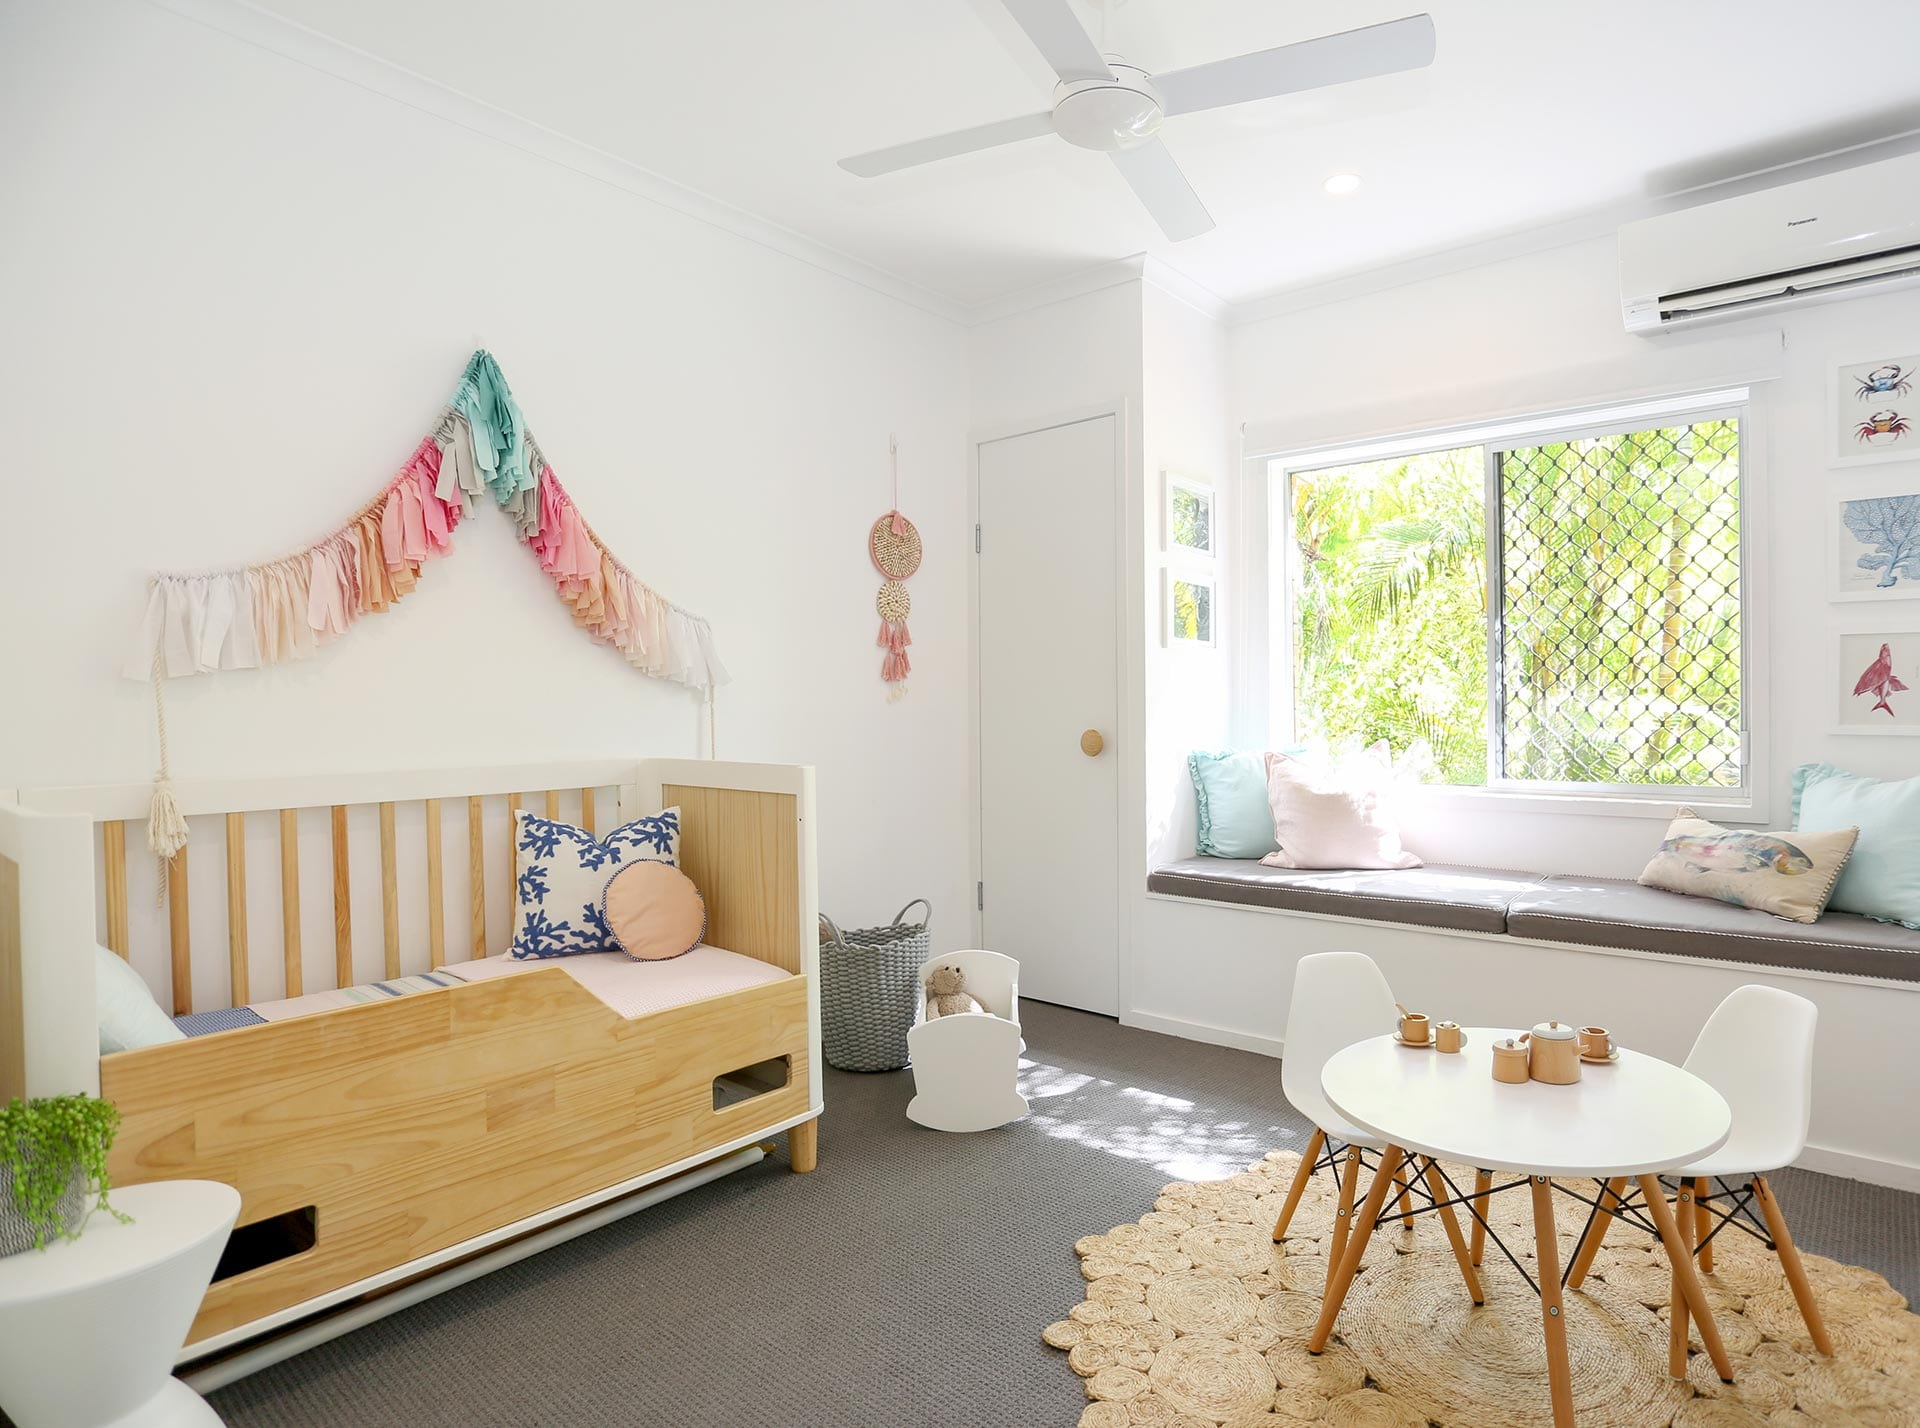 Waverley Bedroom Nursery